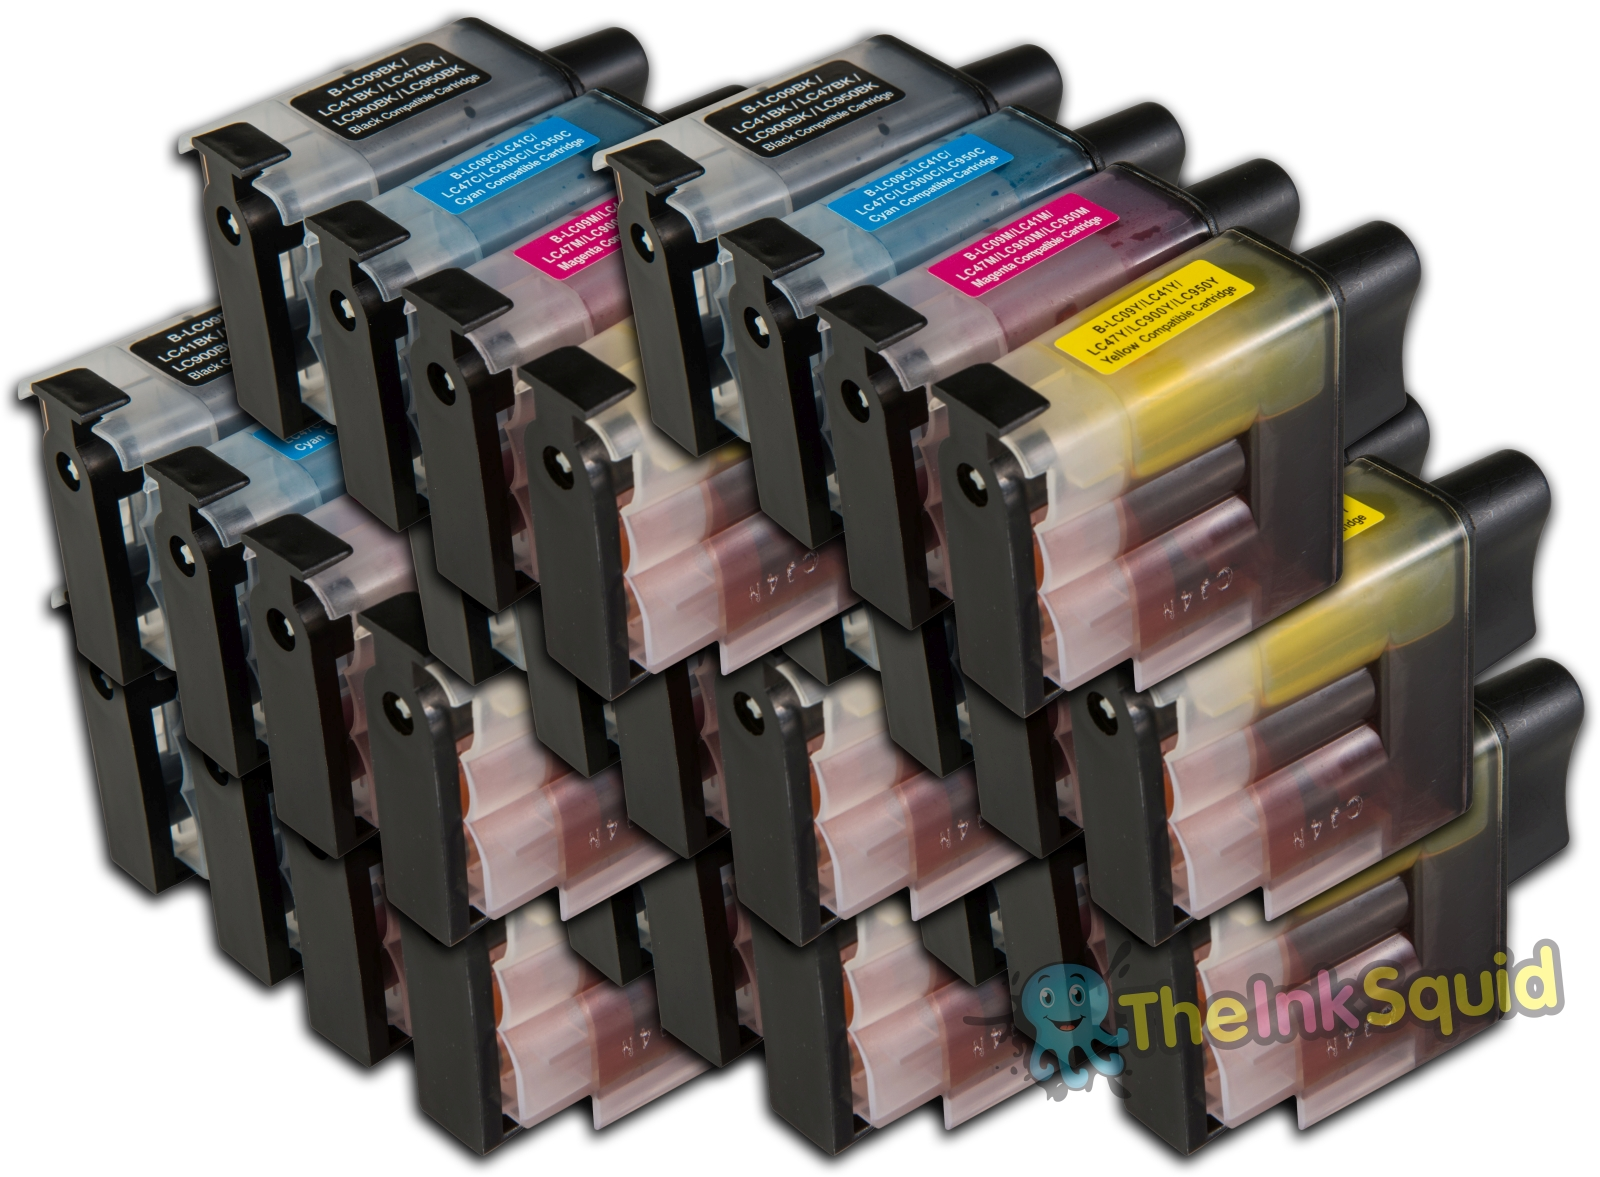 32 LC900 Compatible Brother Printer Ink Cartridges Black